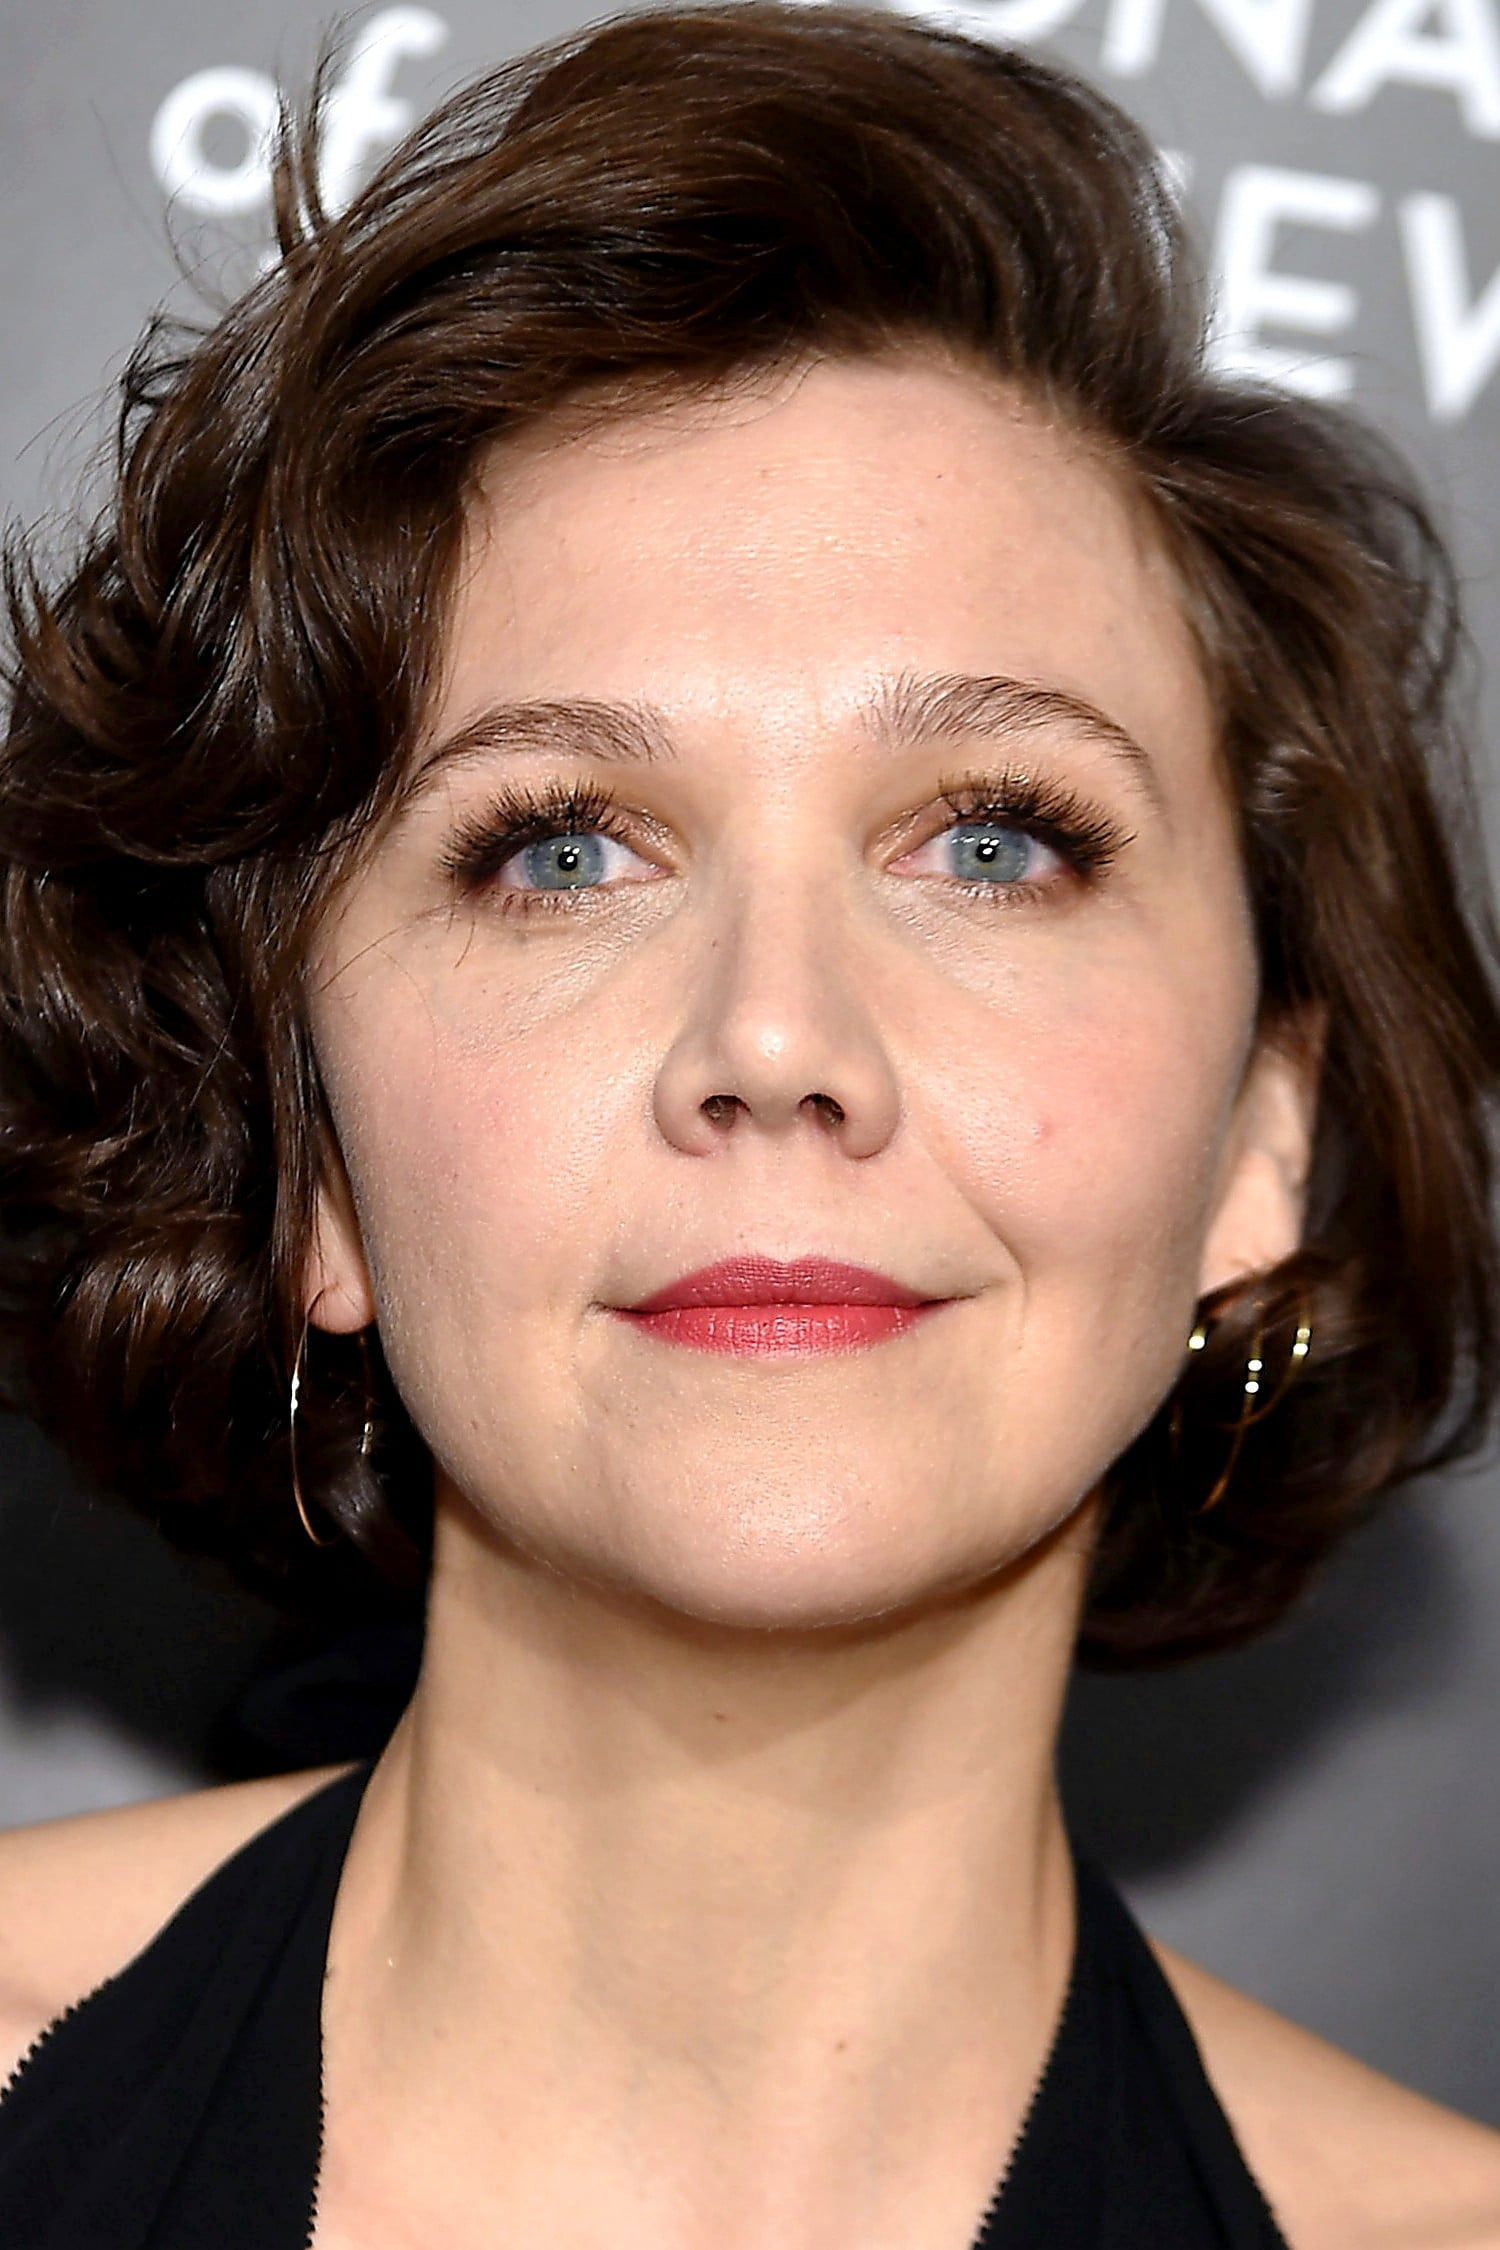 Maggie Gyllenhaal nude (19 fotos) Hot, Snapchat, cameltoe